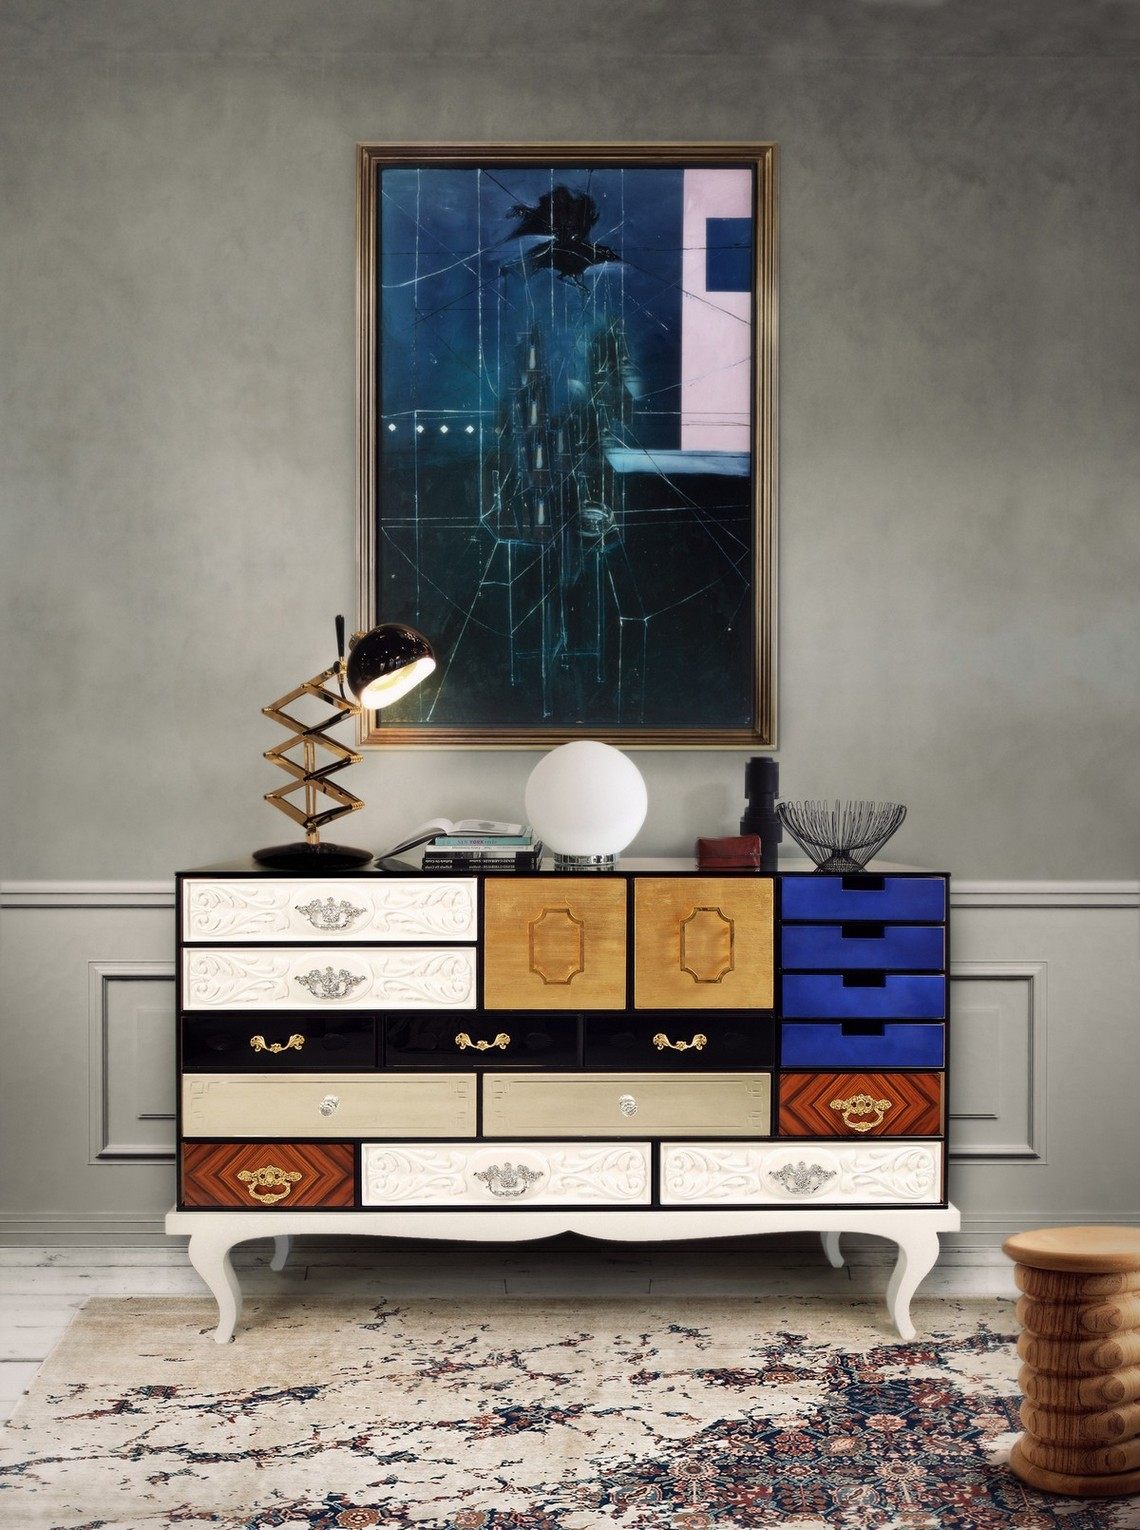 Top Exclusive Sideboards exclusive sideboards Top Exclusive Sideboards soho 1